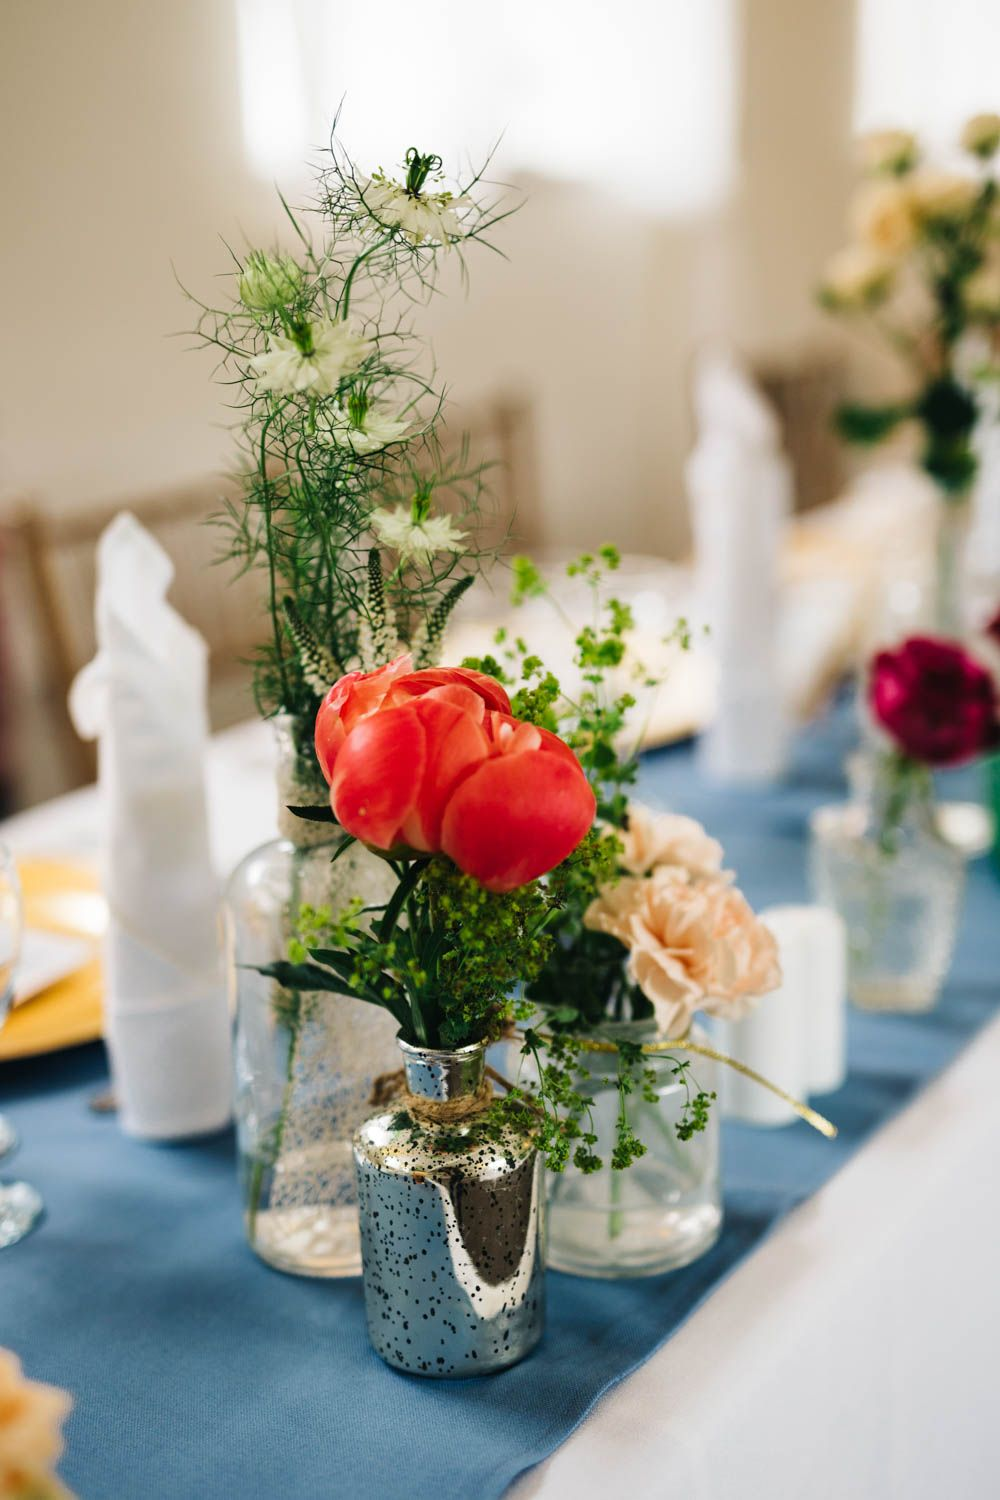 Flowers Stems In Vases Jesús Peiró Bridal Gown Outdoor Wedding Ballyscullion Park Northern